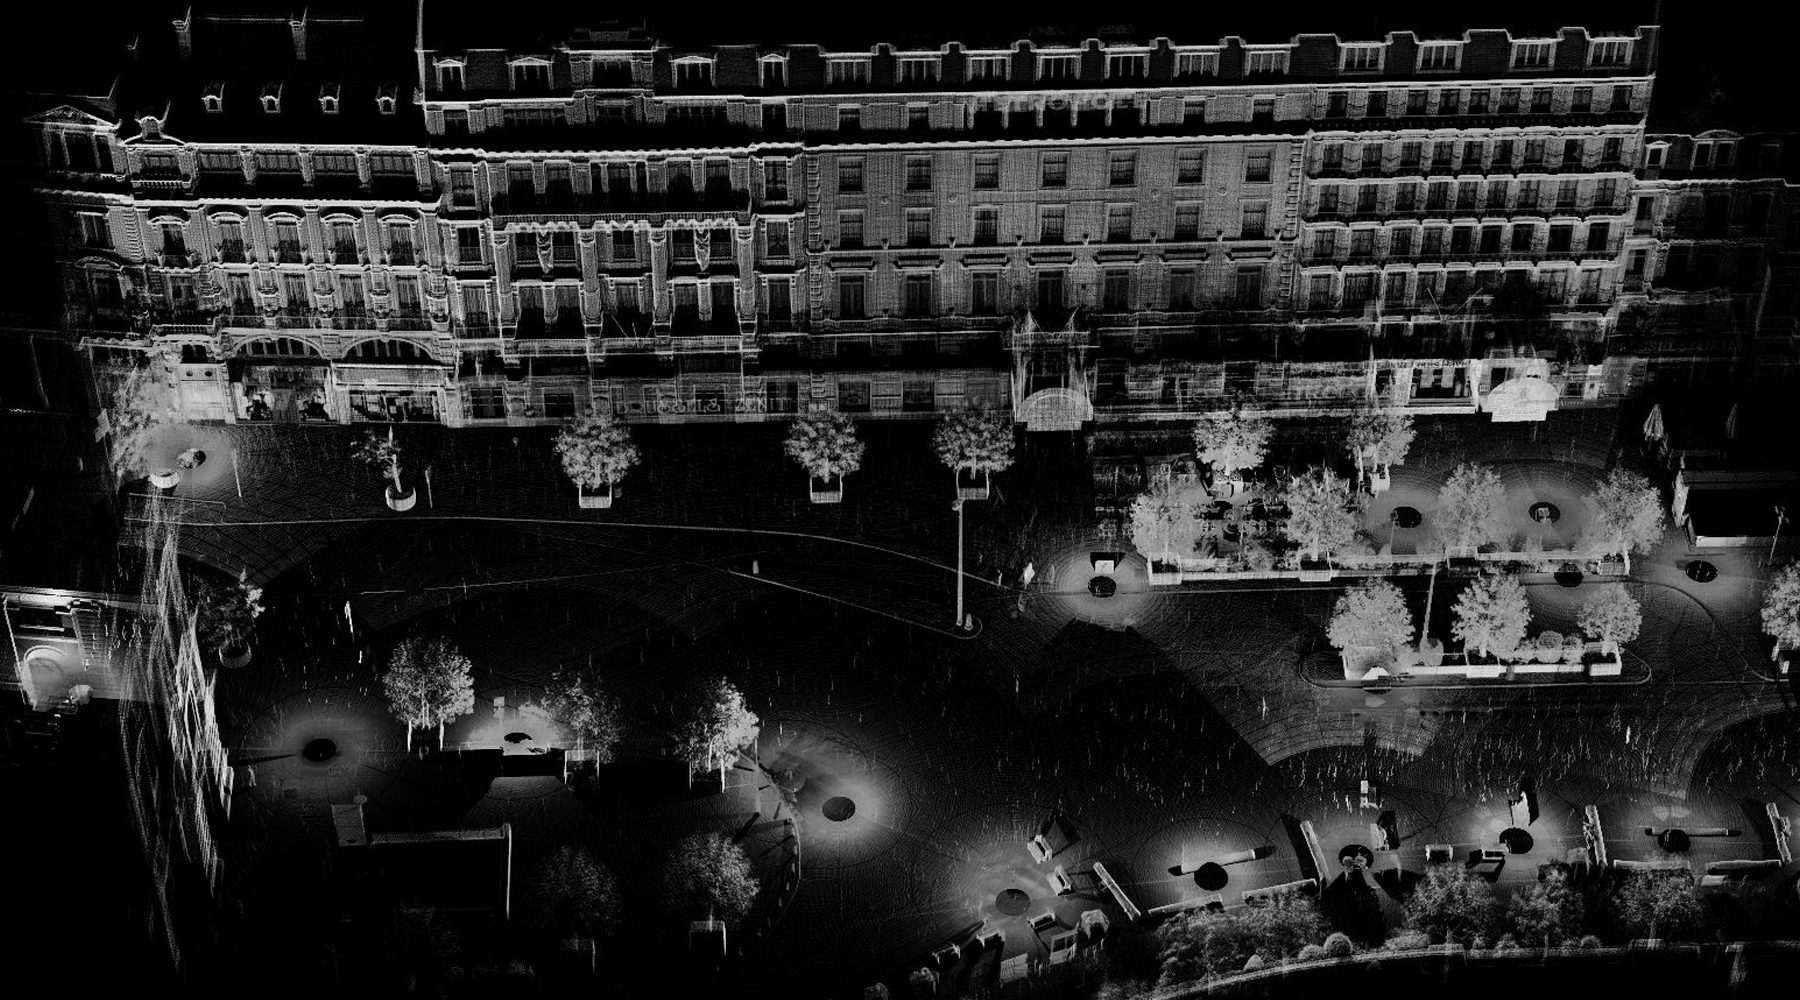 08 Hotel Metropole, Brussels - Point cloud